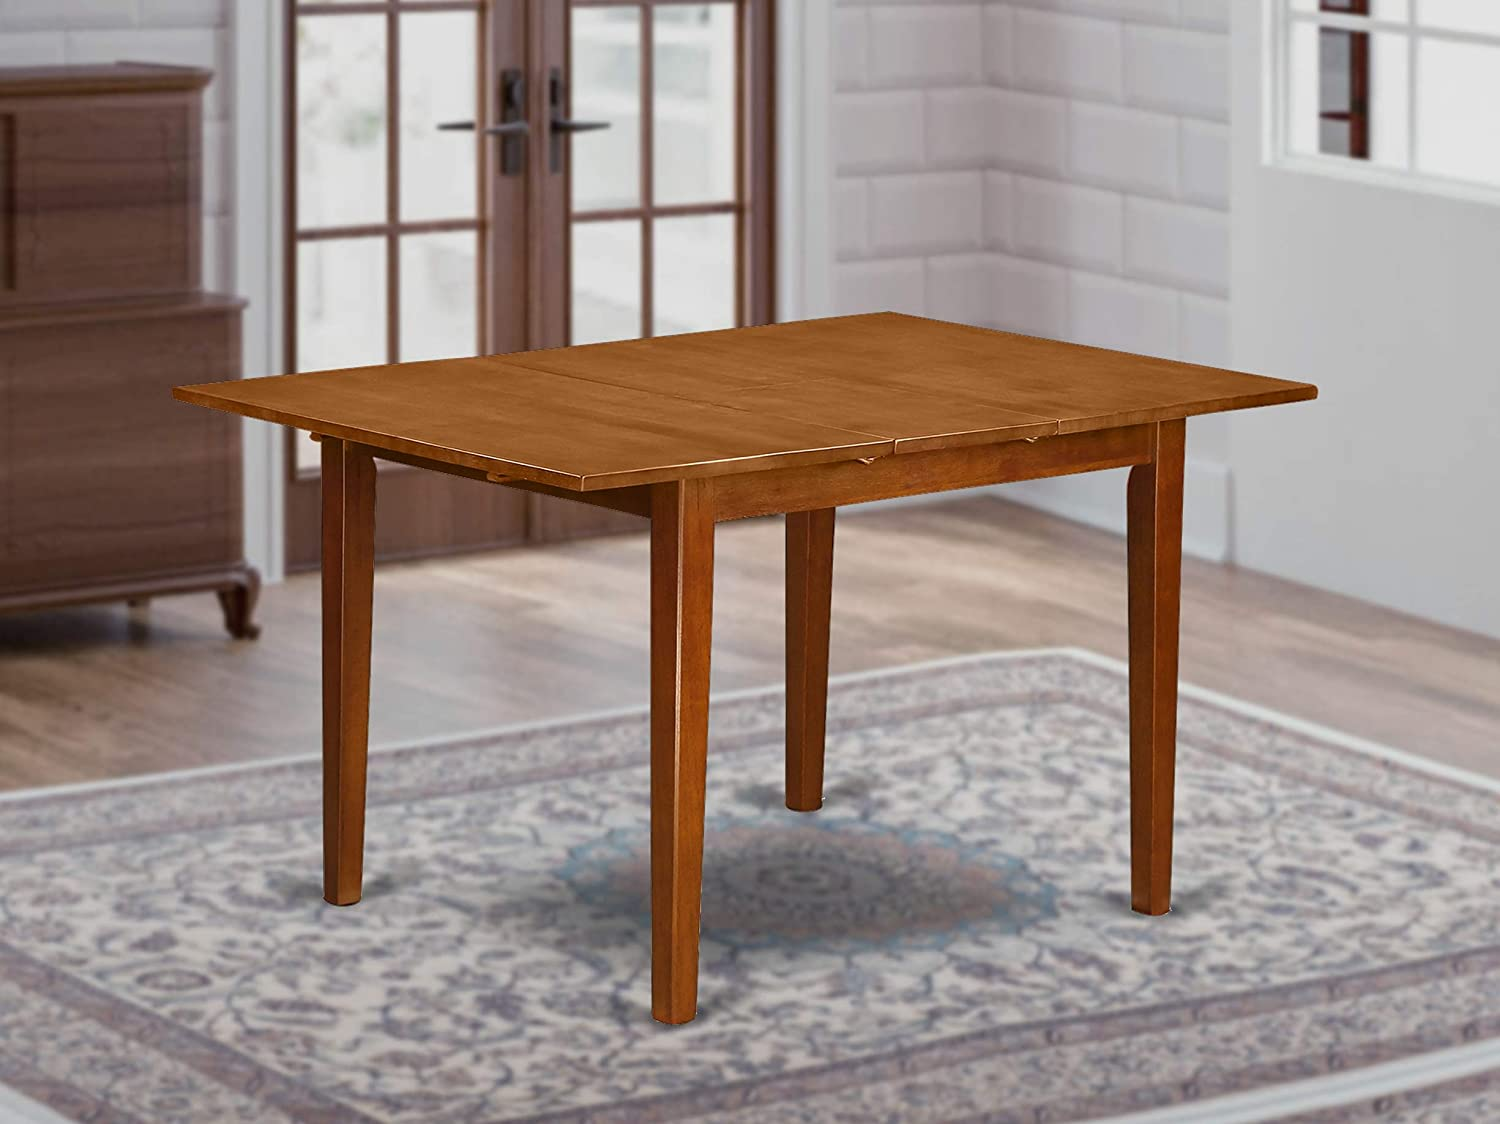 Milan Rectangular dinette kitchen Table 36 x54 with 12 butterfly leaf in brown finish